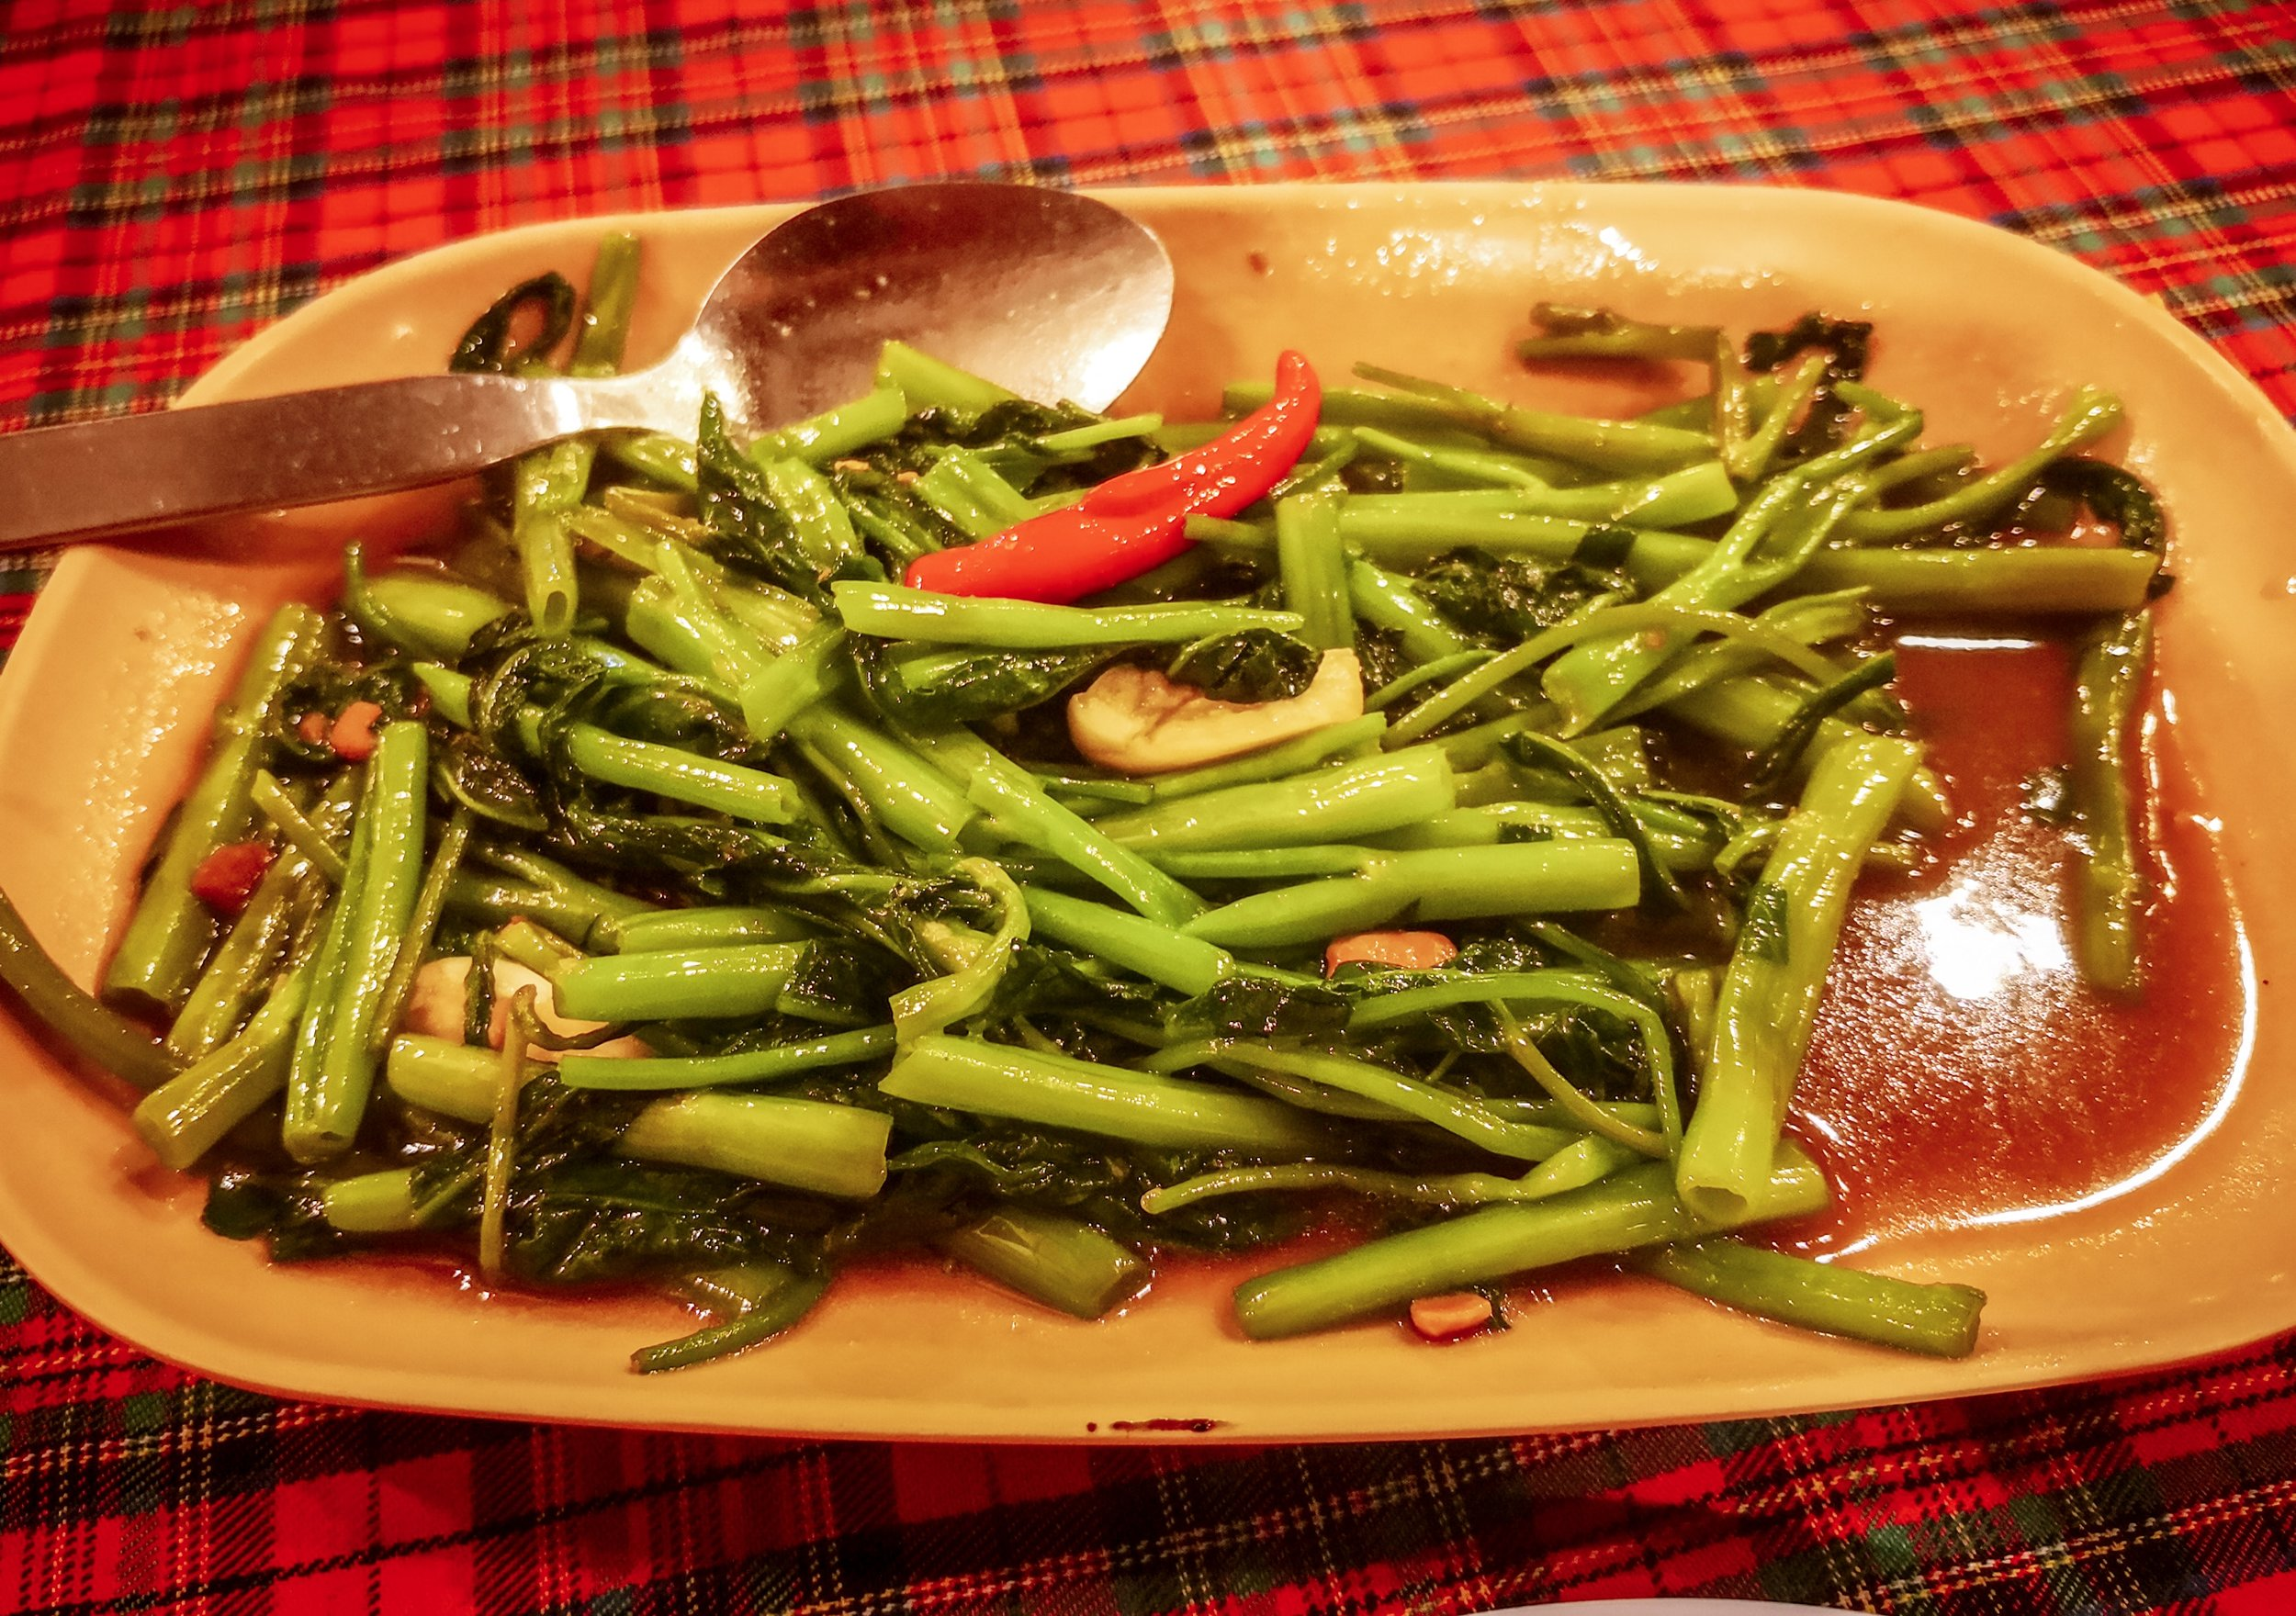 Stir-fired morning glory in oyster sauce - sounds funny, but it's a vegetable what is worth its name